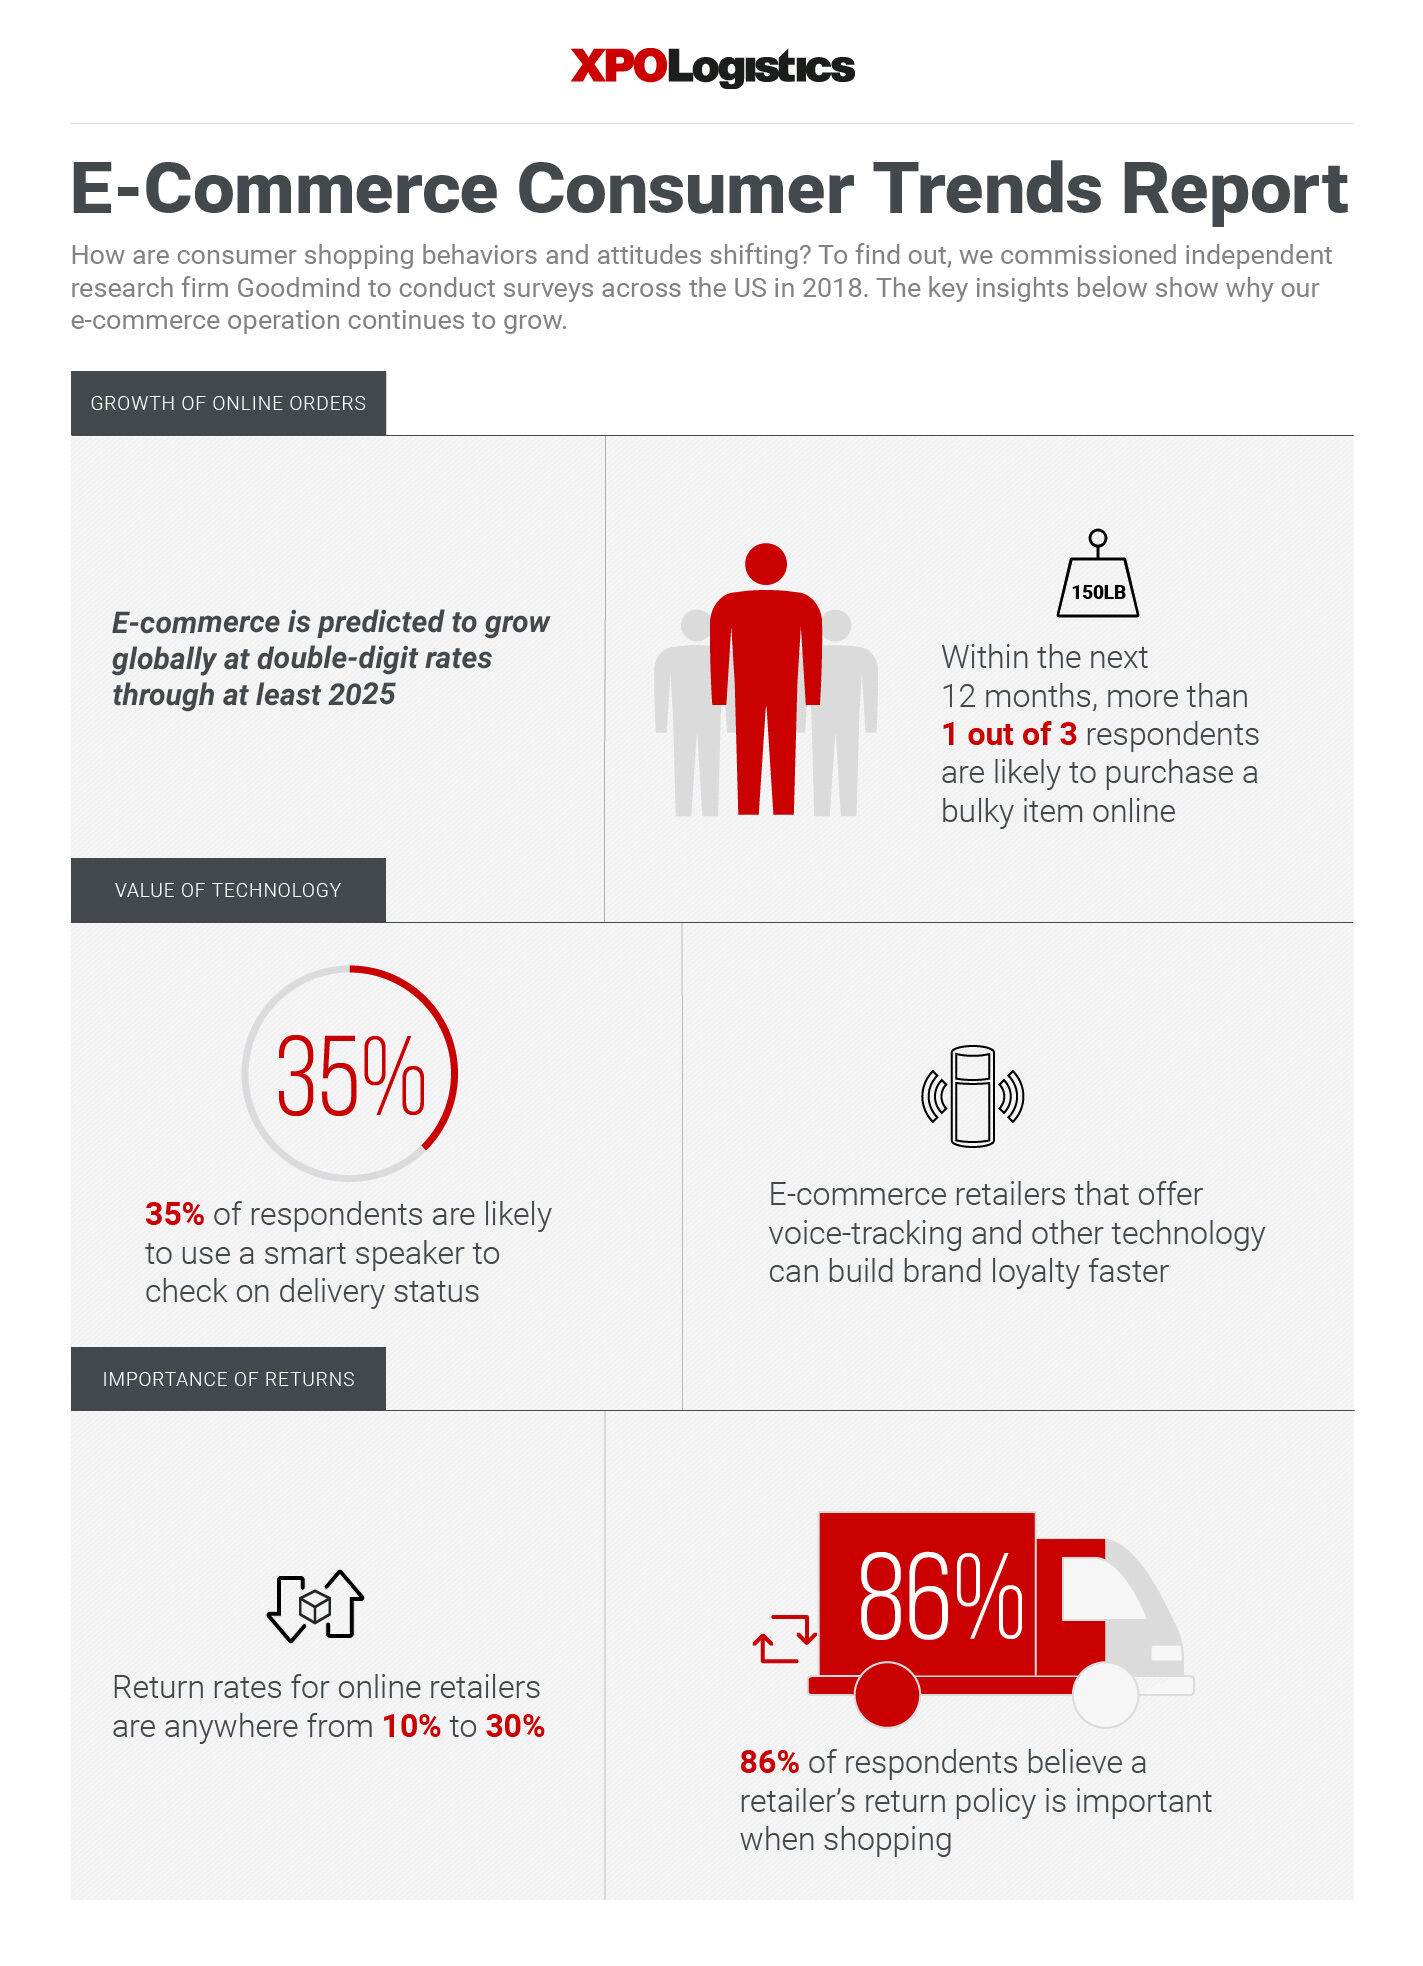 E-Commerce Consumer Trends Report Infographic